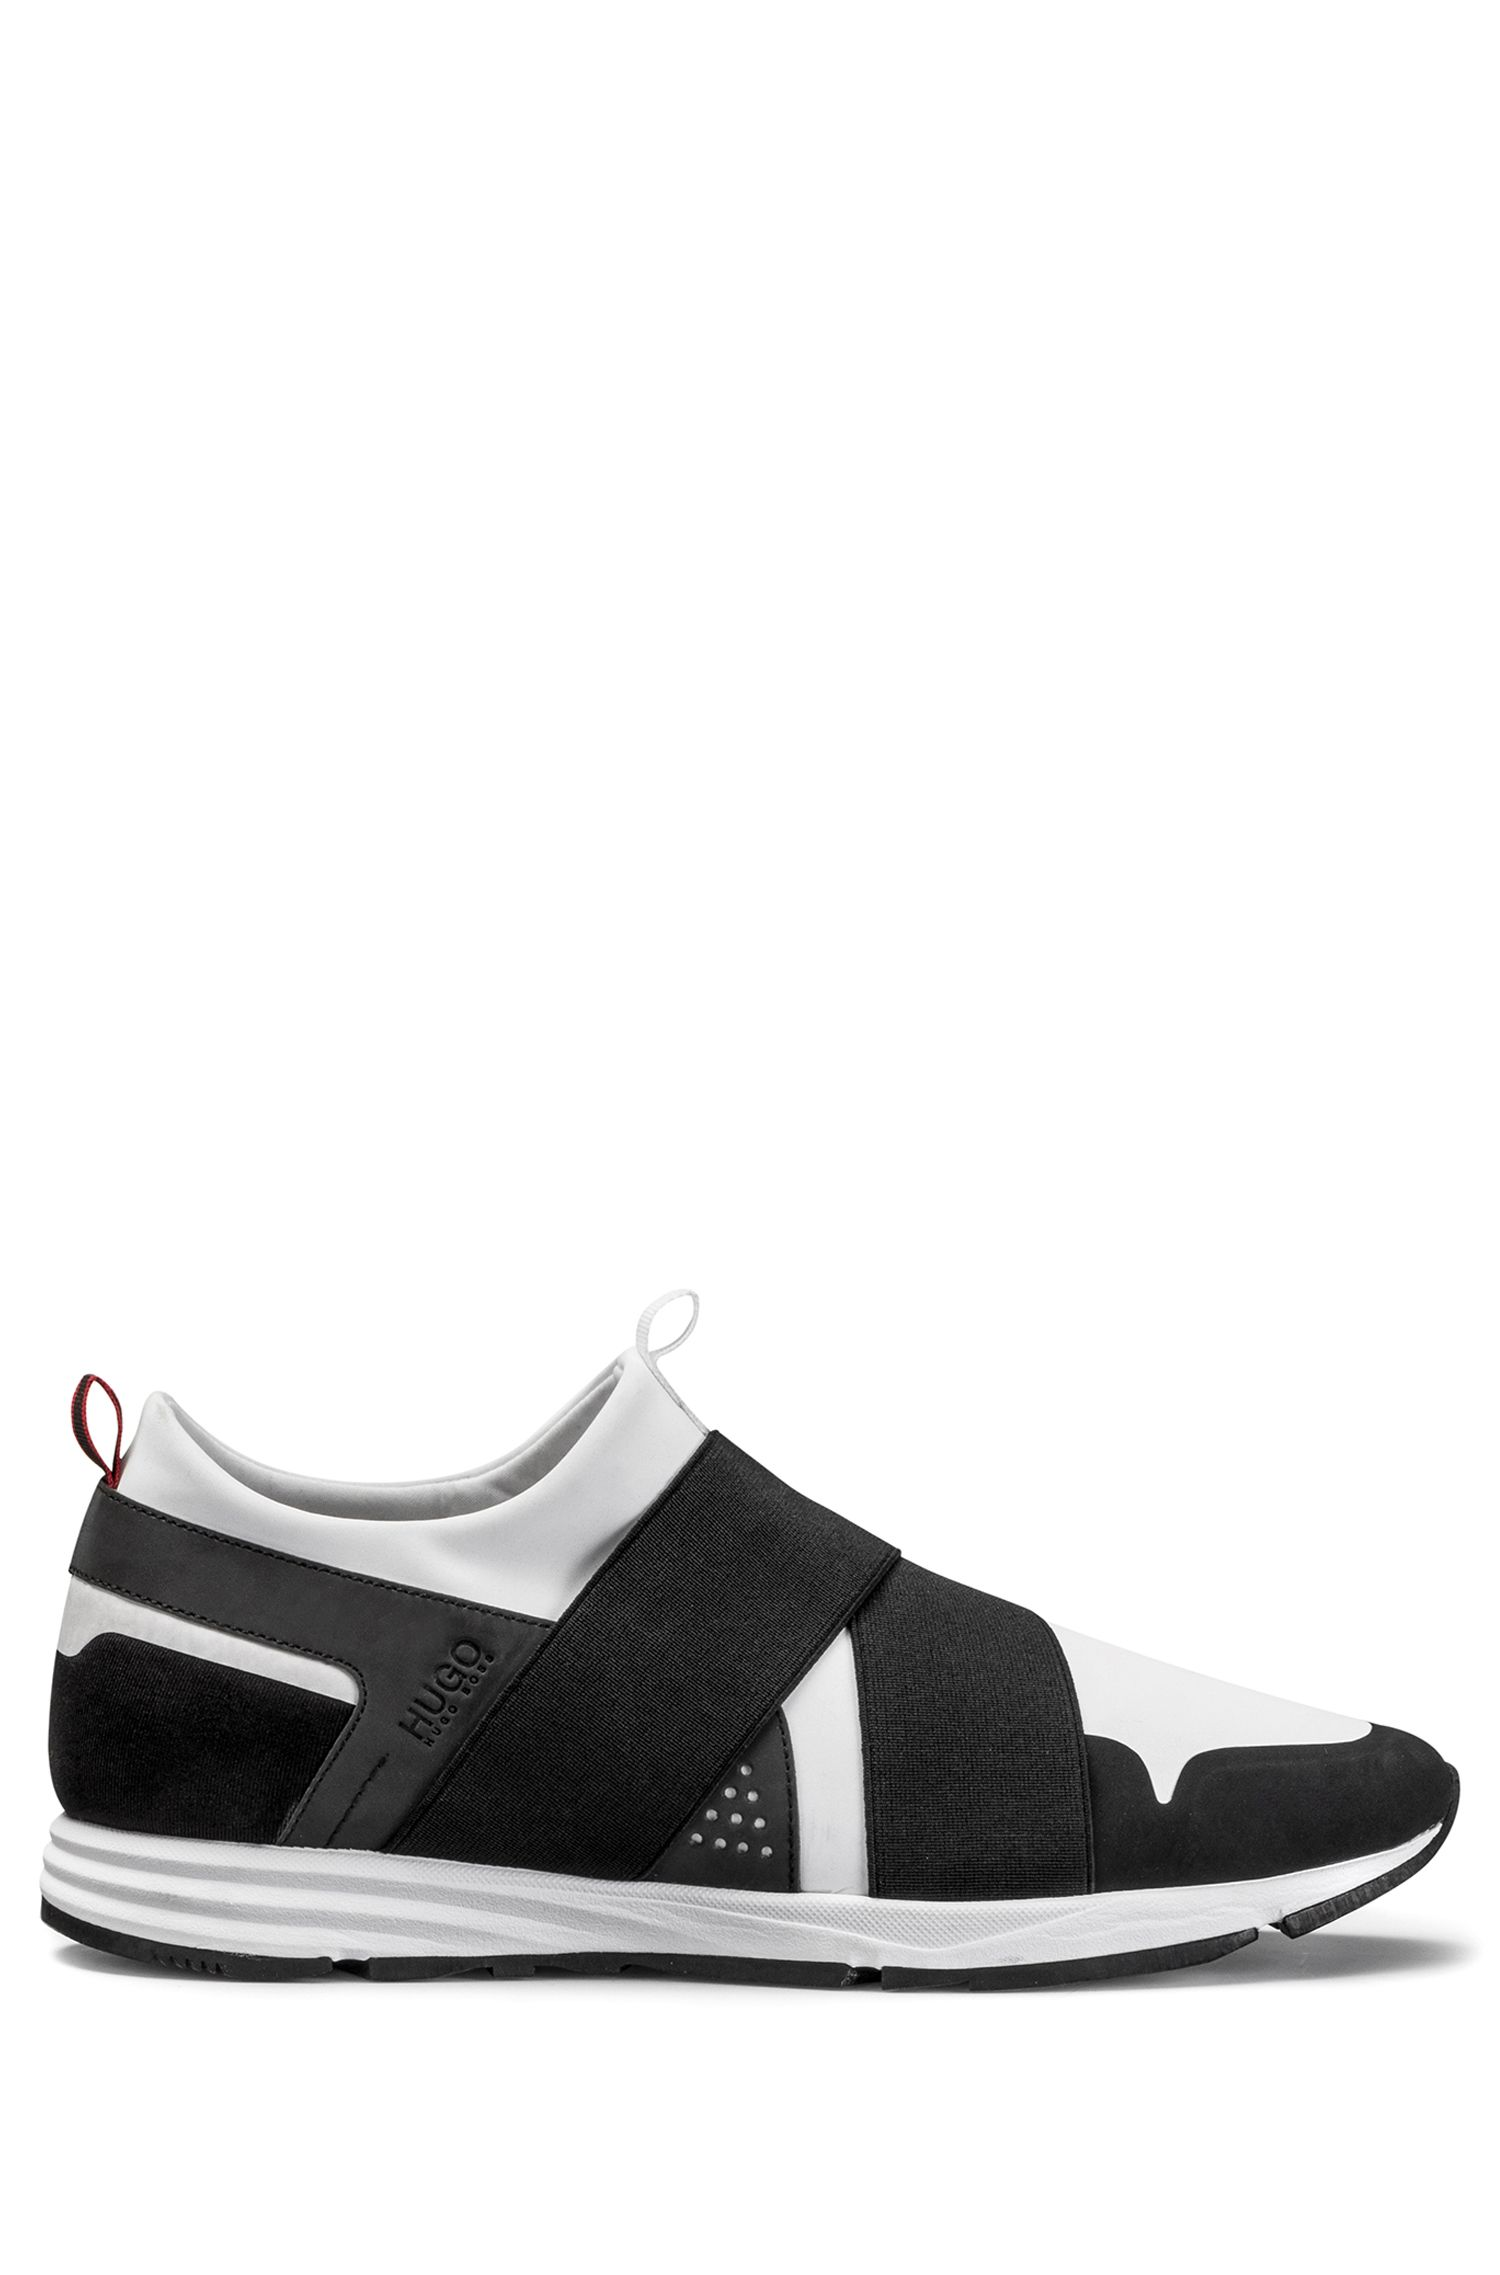 Bandage-top trainers in technical fabric